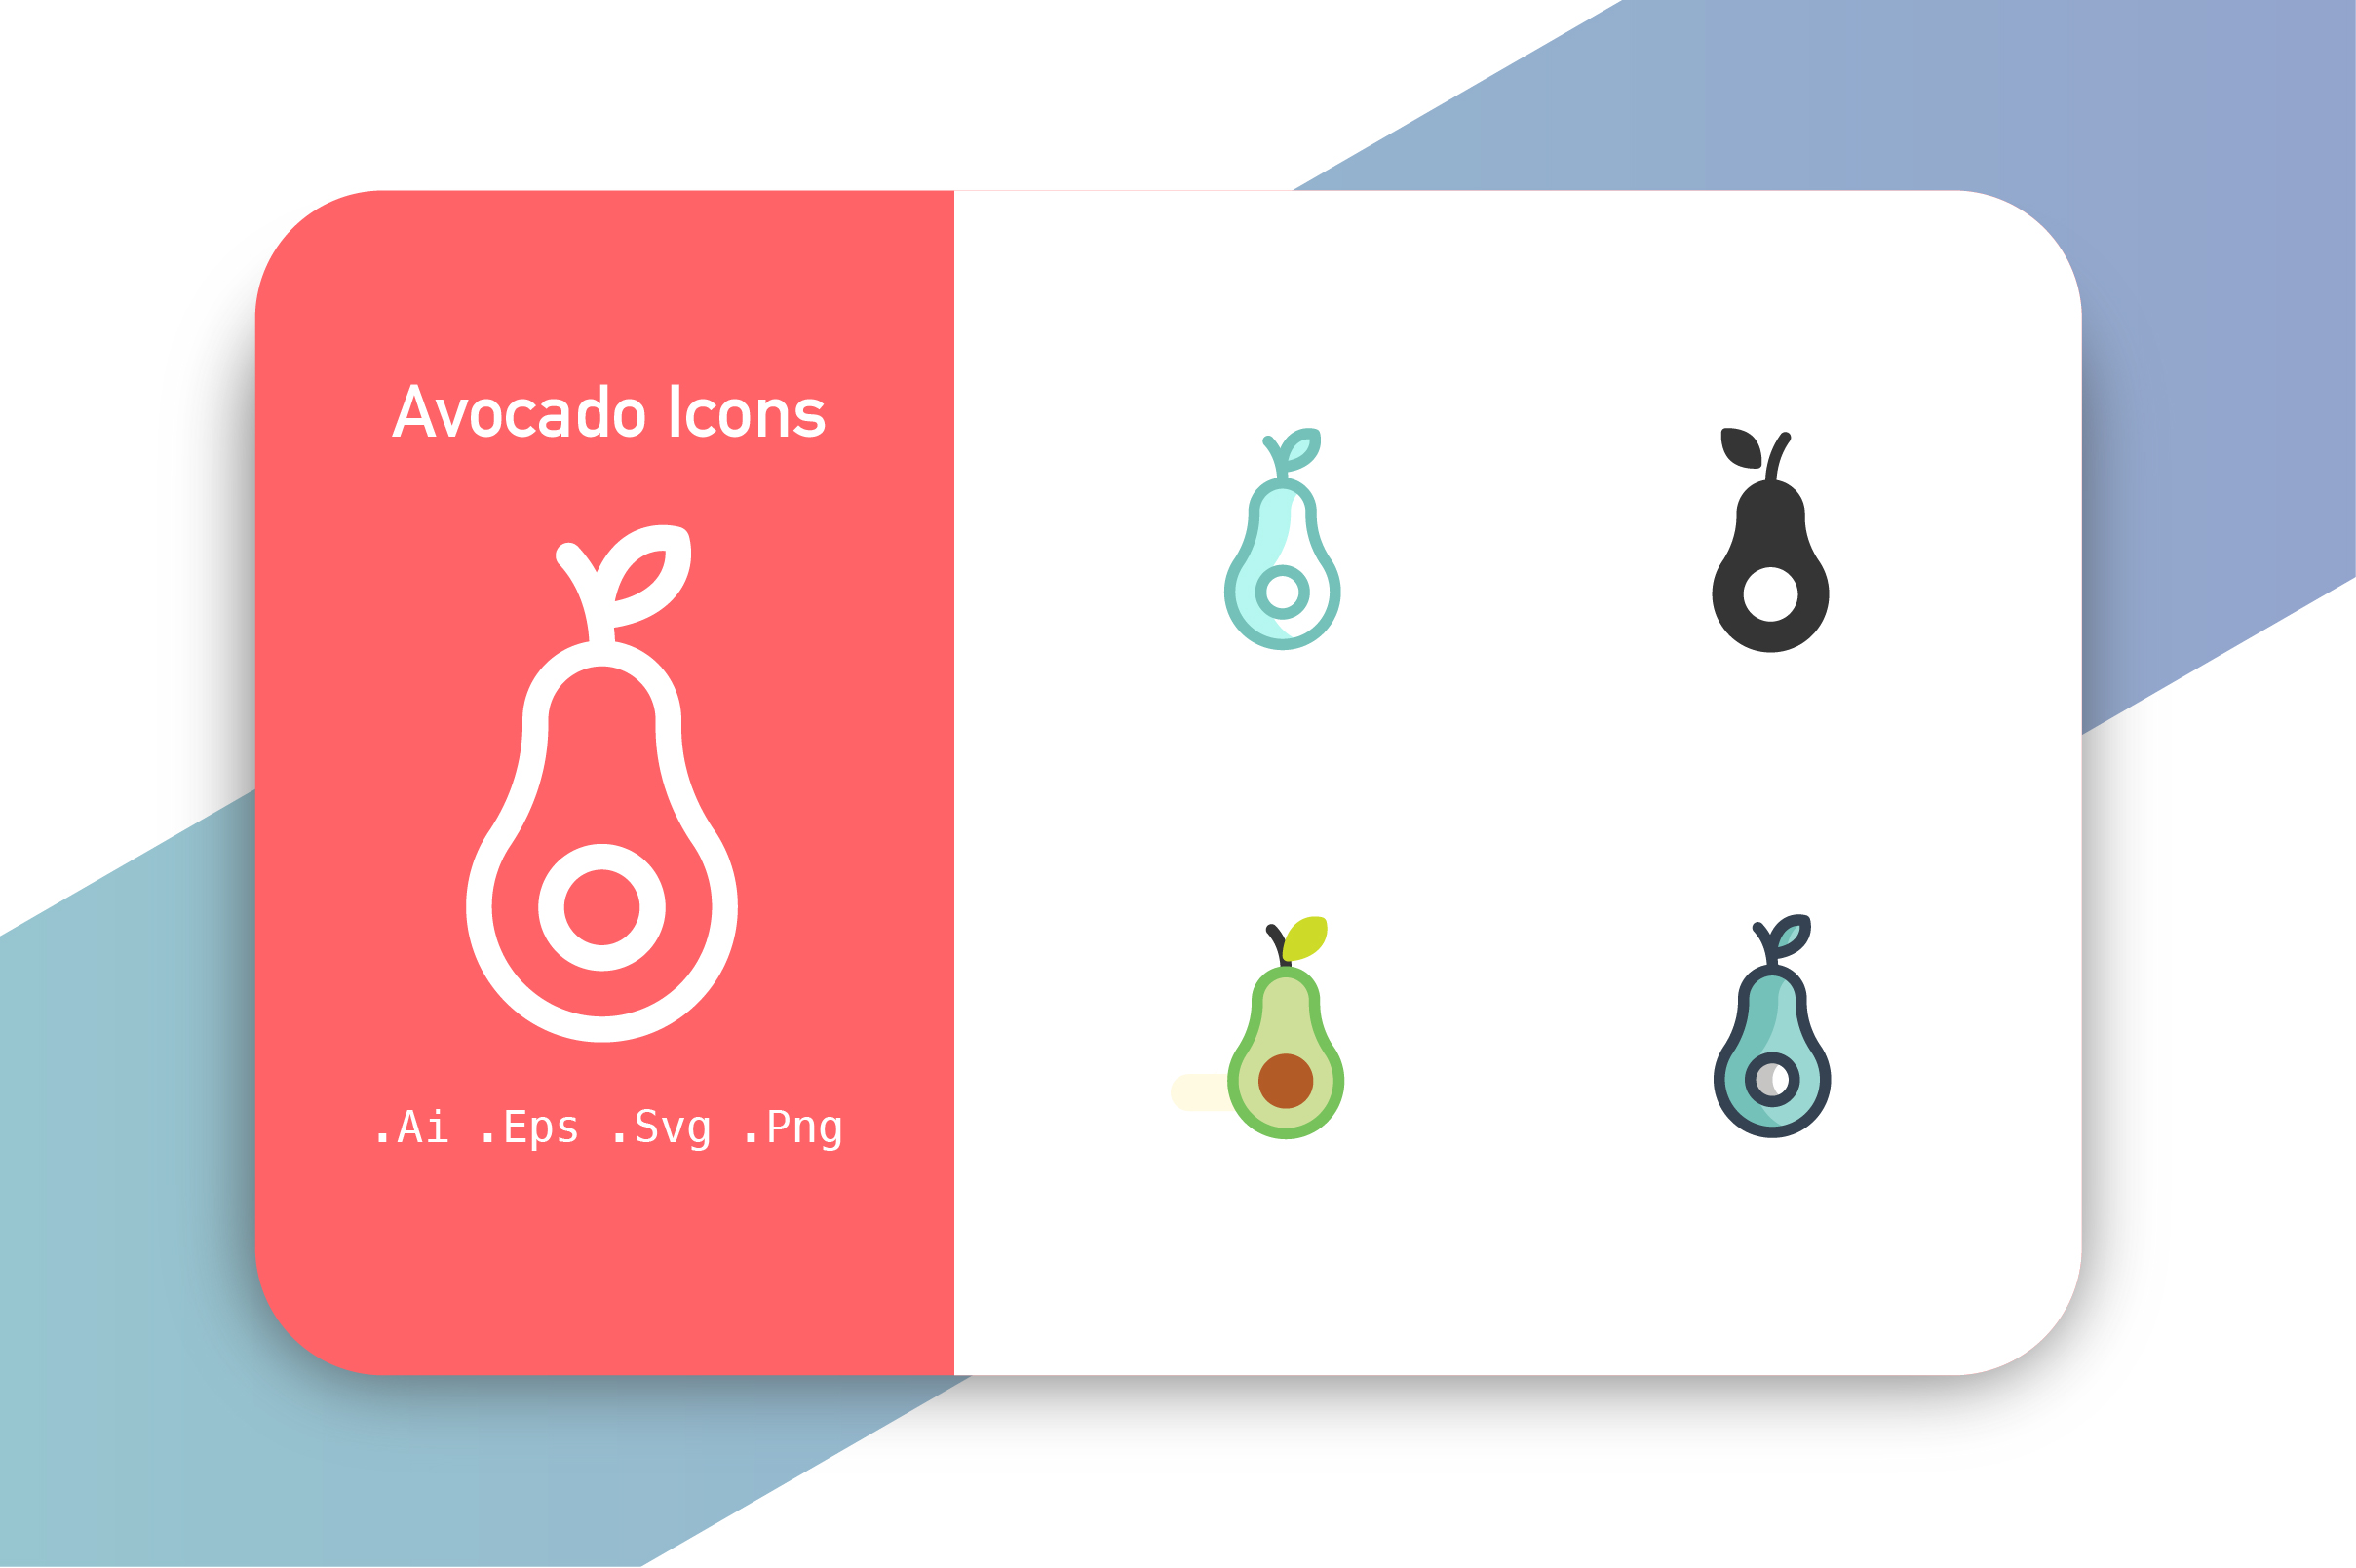 Download Free Avocado Graphic By Hellopixelzstudio Creative Fabrica for Cricut Explore, Silhouette and other cutting machines.